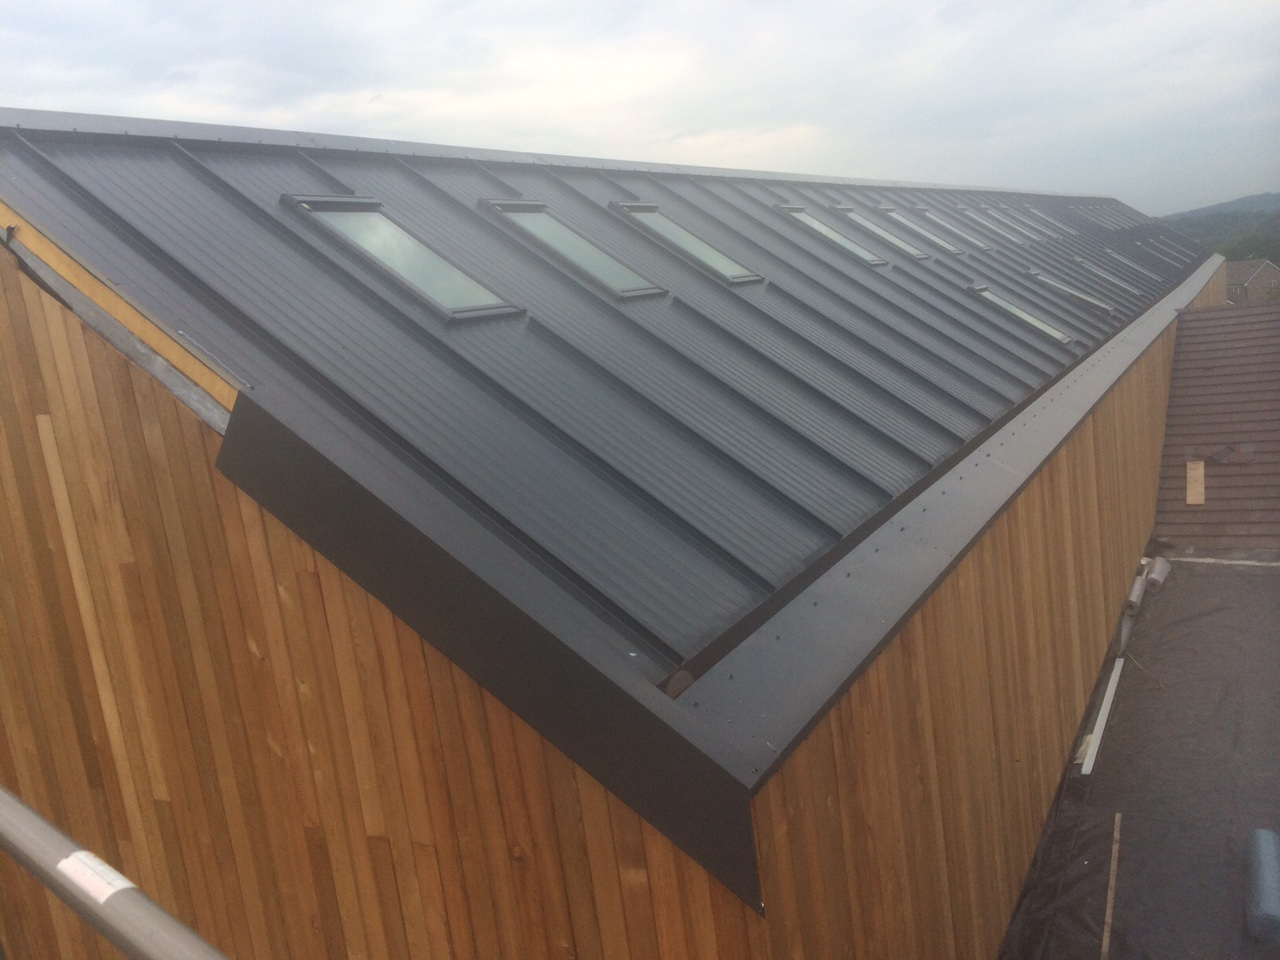 Industrial Roofing Newcastle upon Tyne